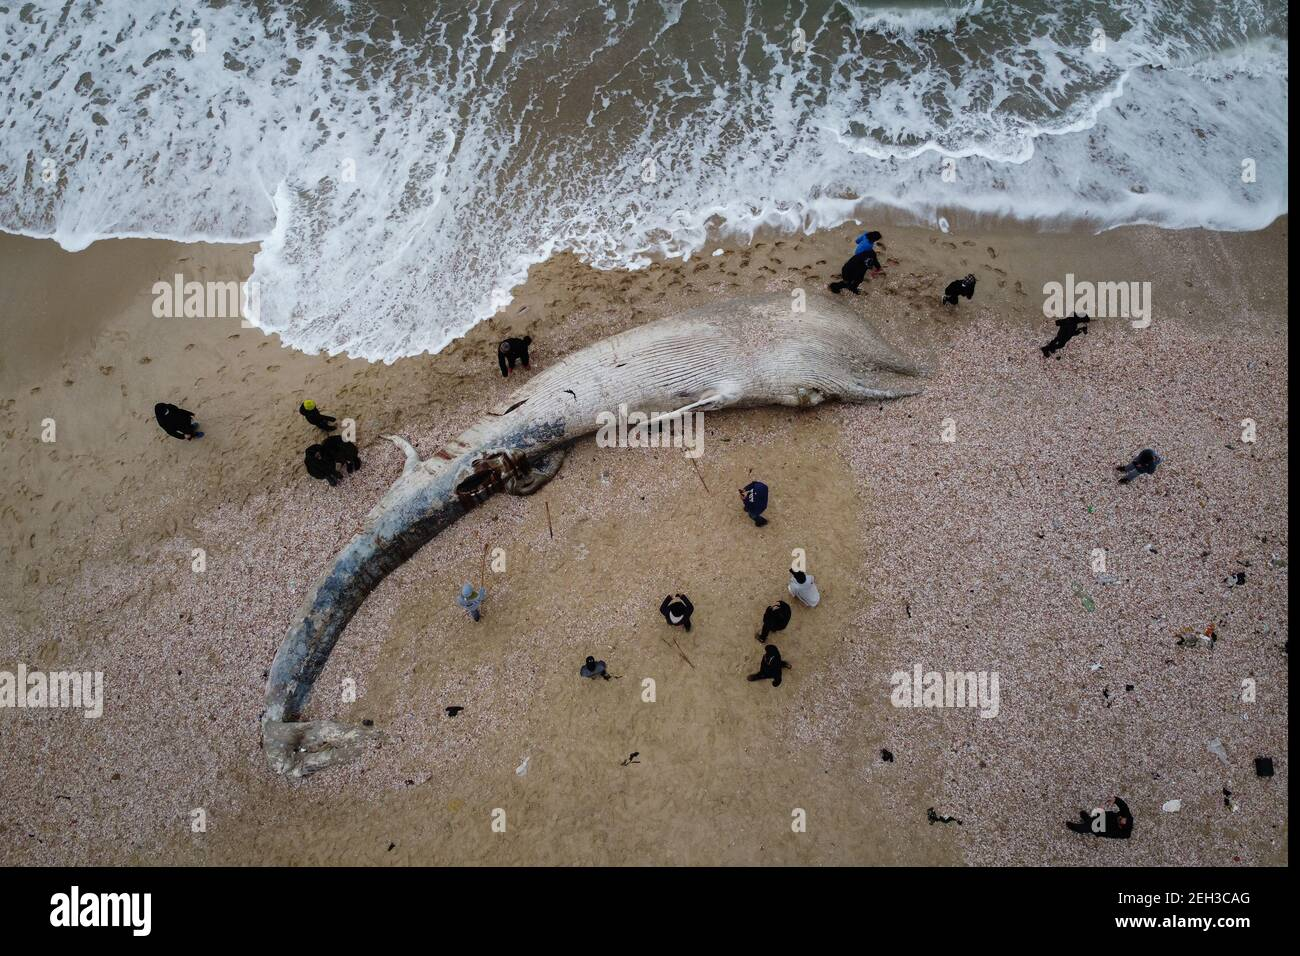 Nitzanim Reserve, Israel. 19th Feb, 2021. An aerial view of a dead fin whale calf washed up on a beach south of Tel Aviv. According to Israeli officials, it wasn't clear what caused the death. Credit: Oren Ziv/dpa/Alamy Live News Stock Photo